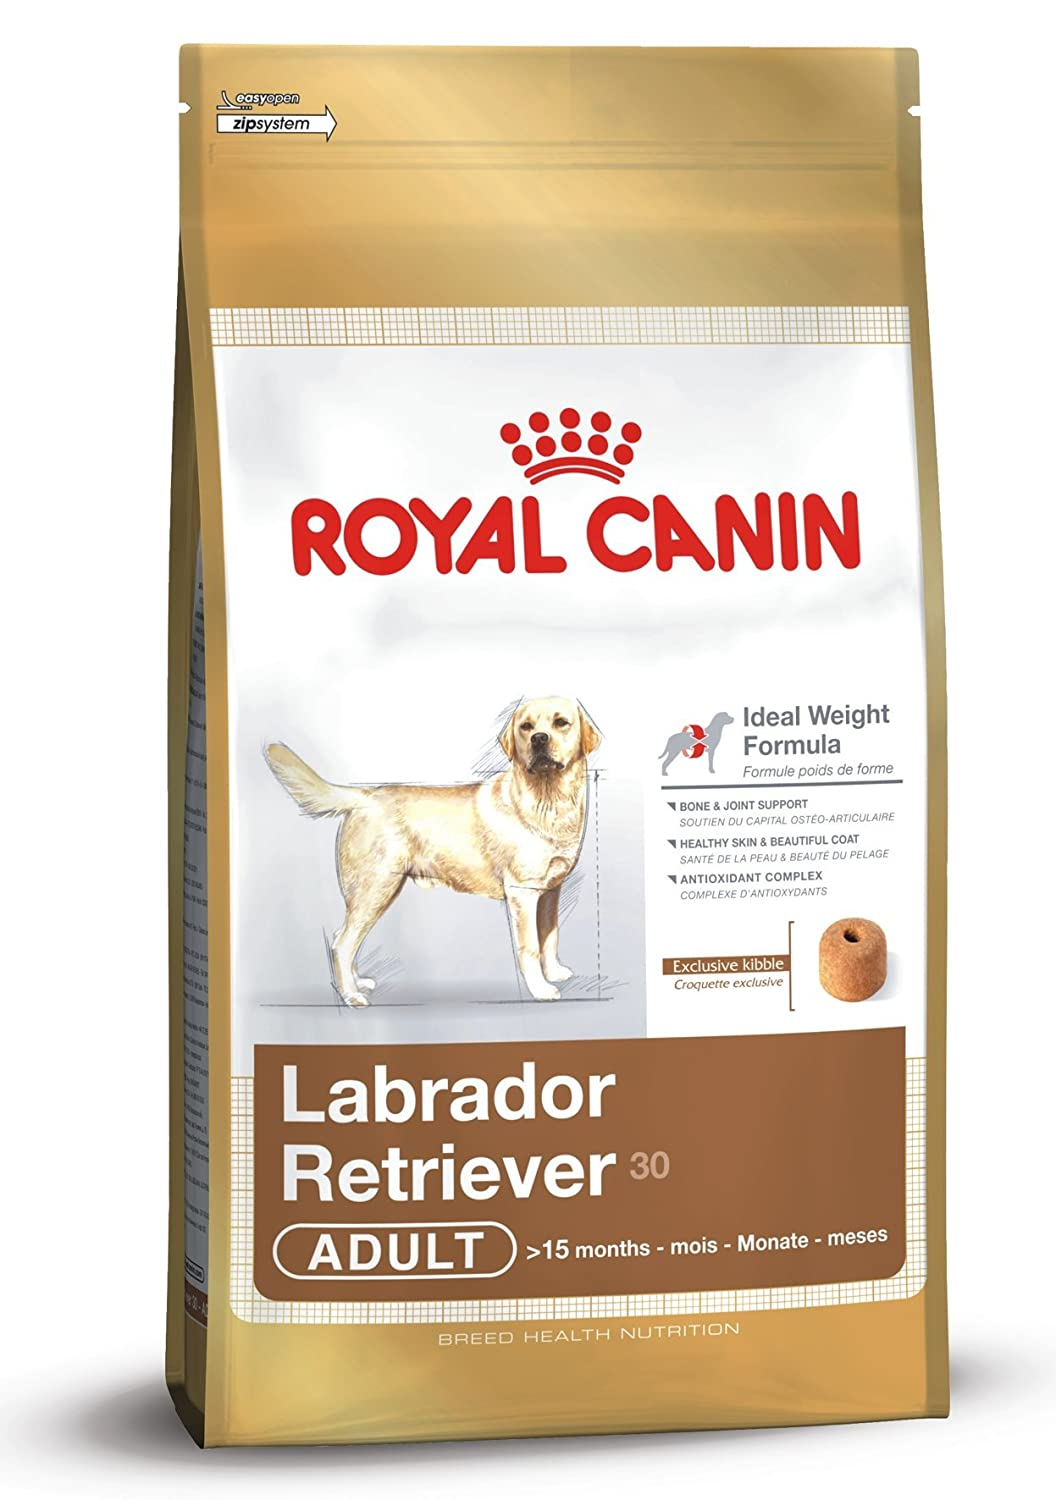 12kg Royal Canin Dog Food Adult Labrador & Retriever, Dry Food 12kg Bag